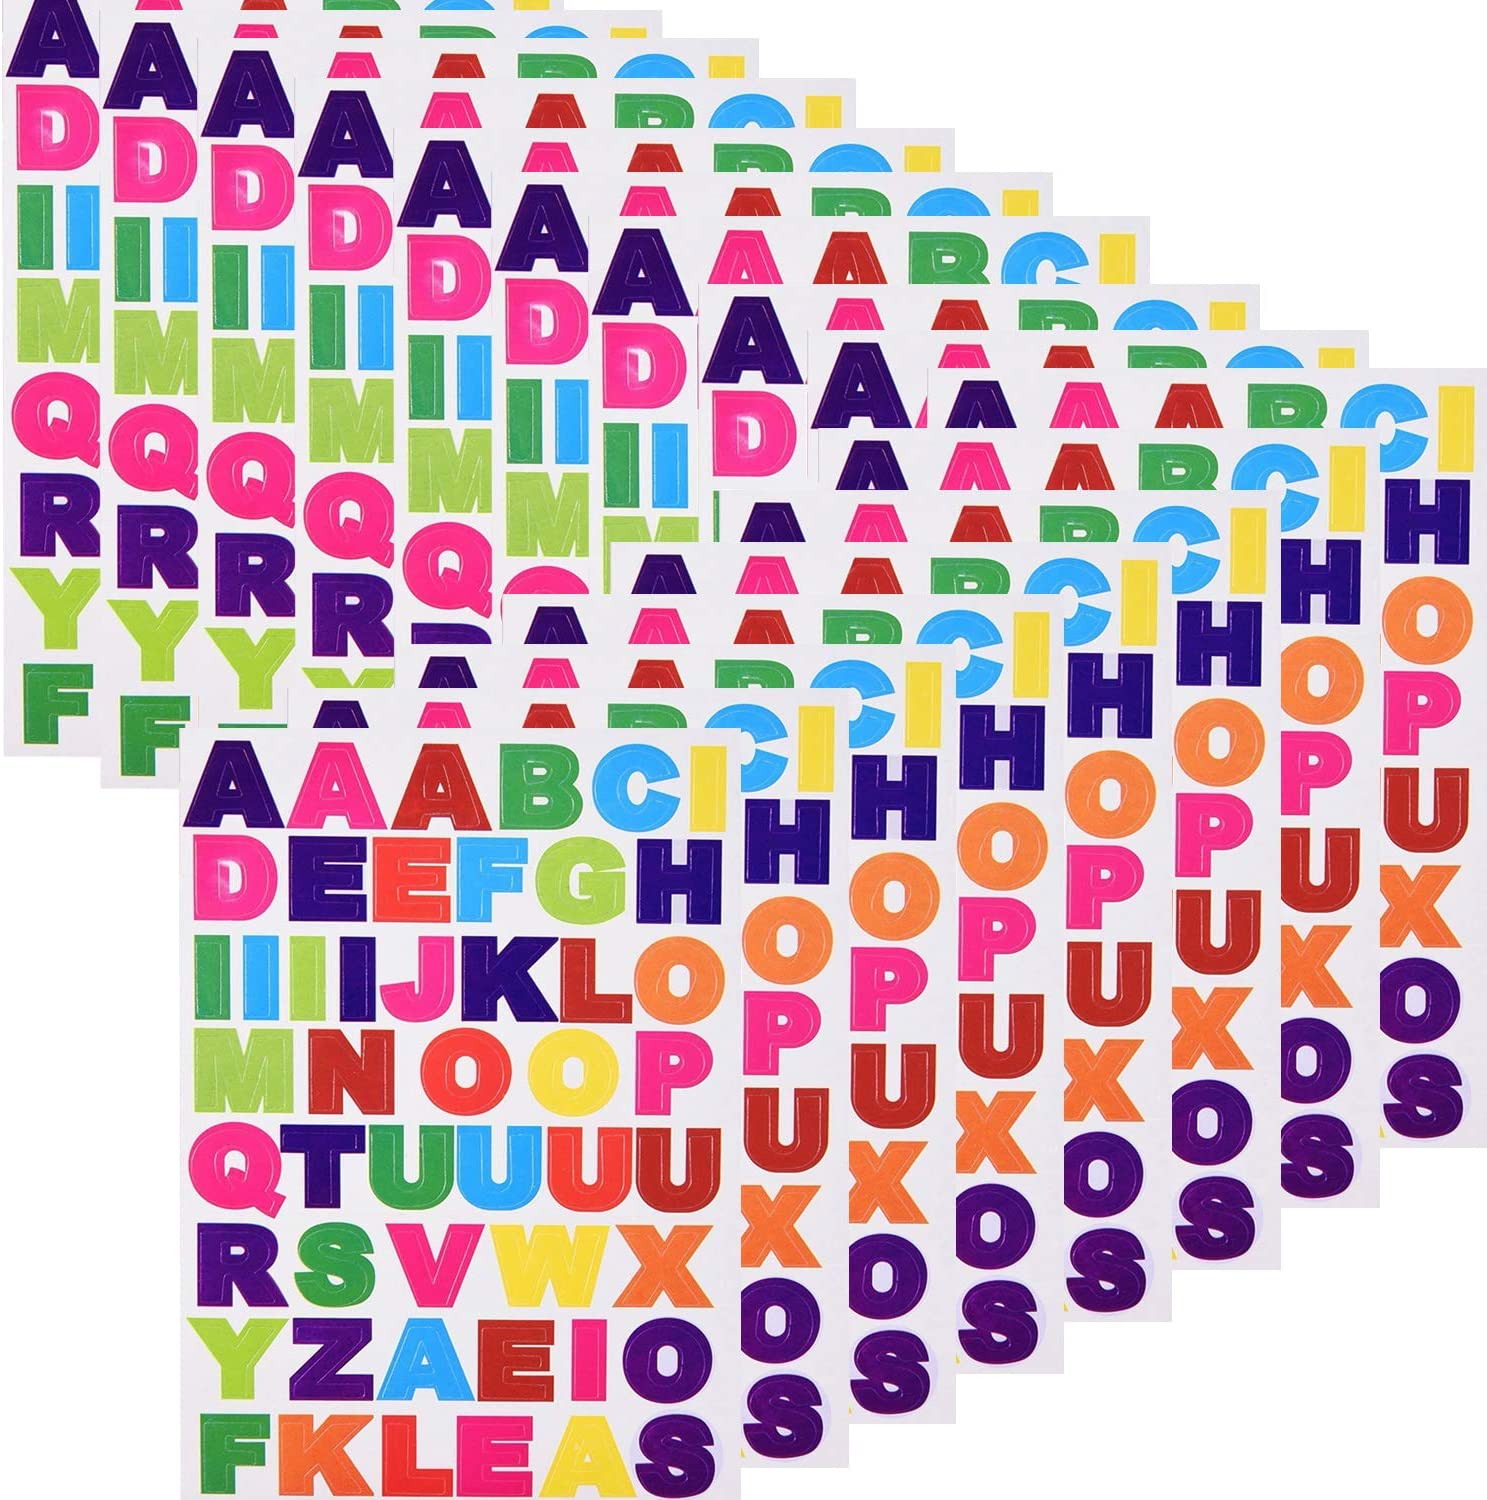 JAMEGIO 50 Sheets Colorful Letter Stickers Cardstock Stickers Alphabet Stickers Self Adhesive Letter Stickers,A to Z